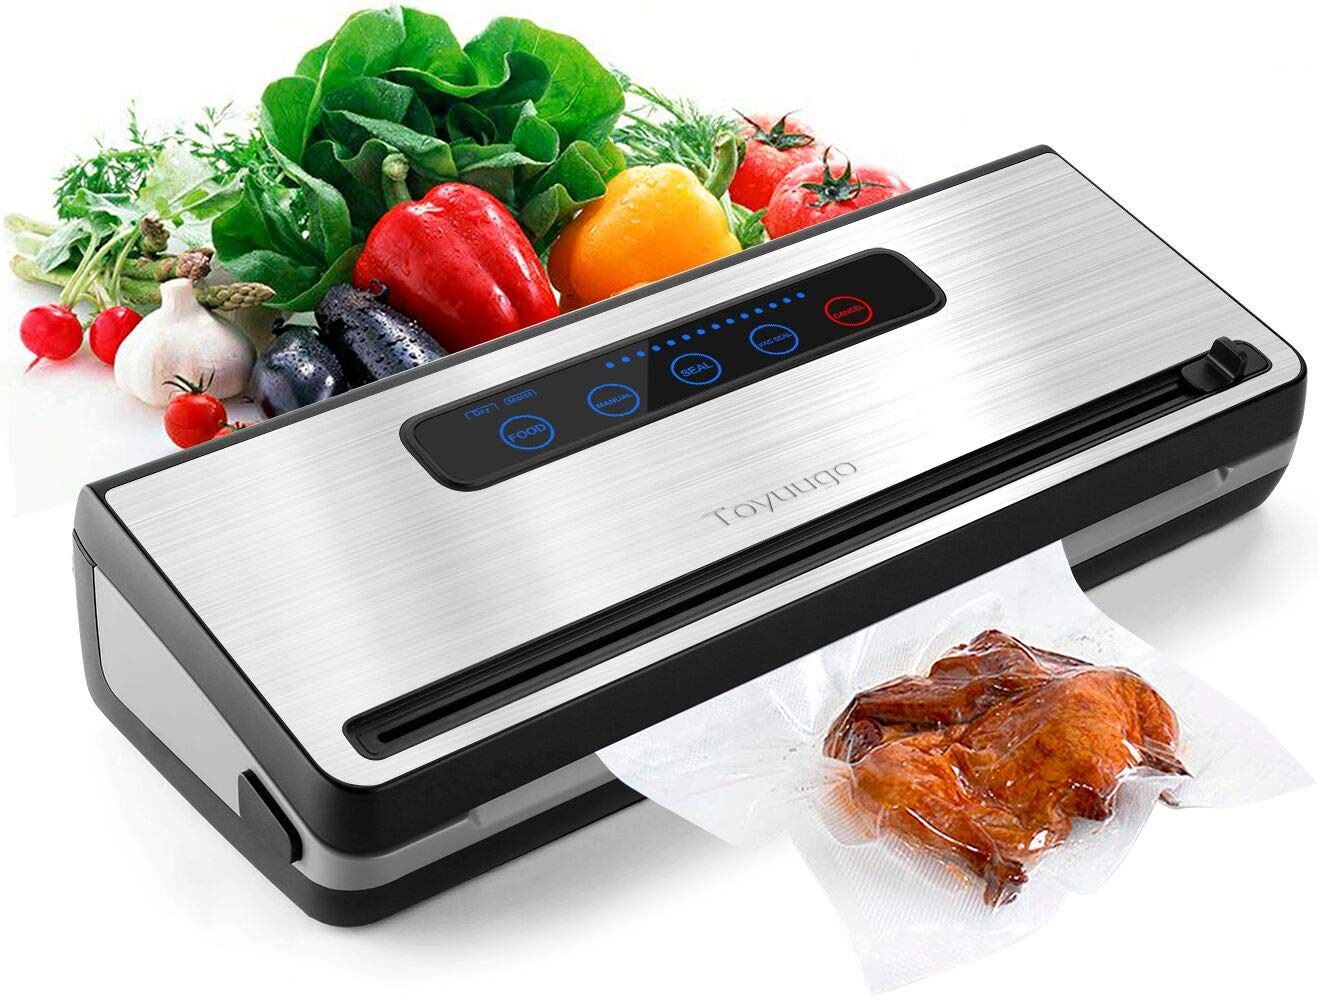 Upgraded Vacuum Sealer Machine, Toyuugo Automatic Vacuum Air Sealing System with Dry Moist Food Modes and One Roll Starter Kit for Food Preservation and Sous Vide Silver